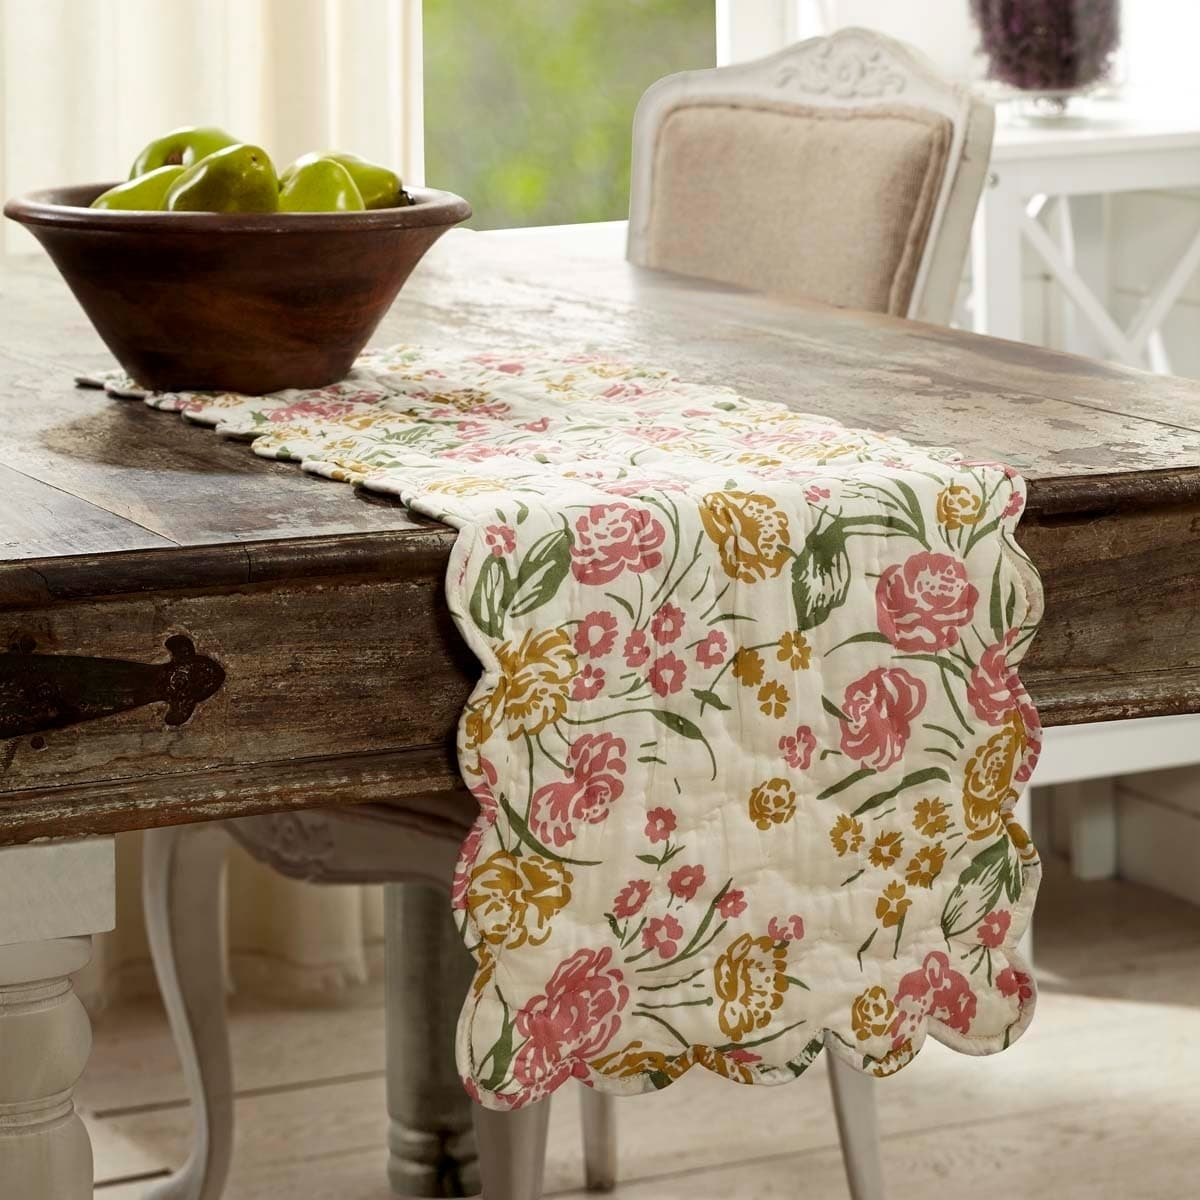 VHC Brands Farmhouse Tabletop /& Kitchen Mariell White Quilted Runner 13 x 36 19793